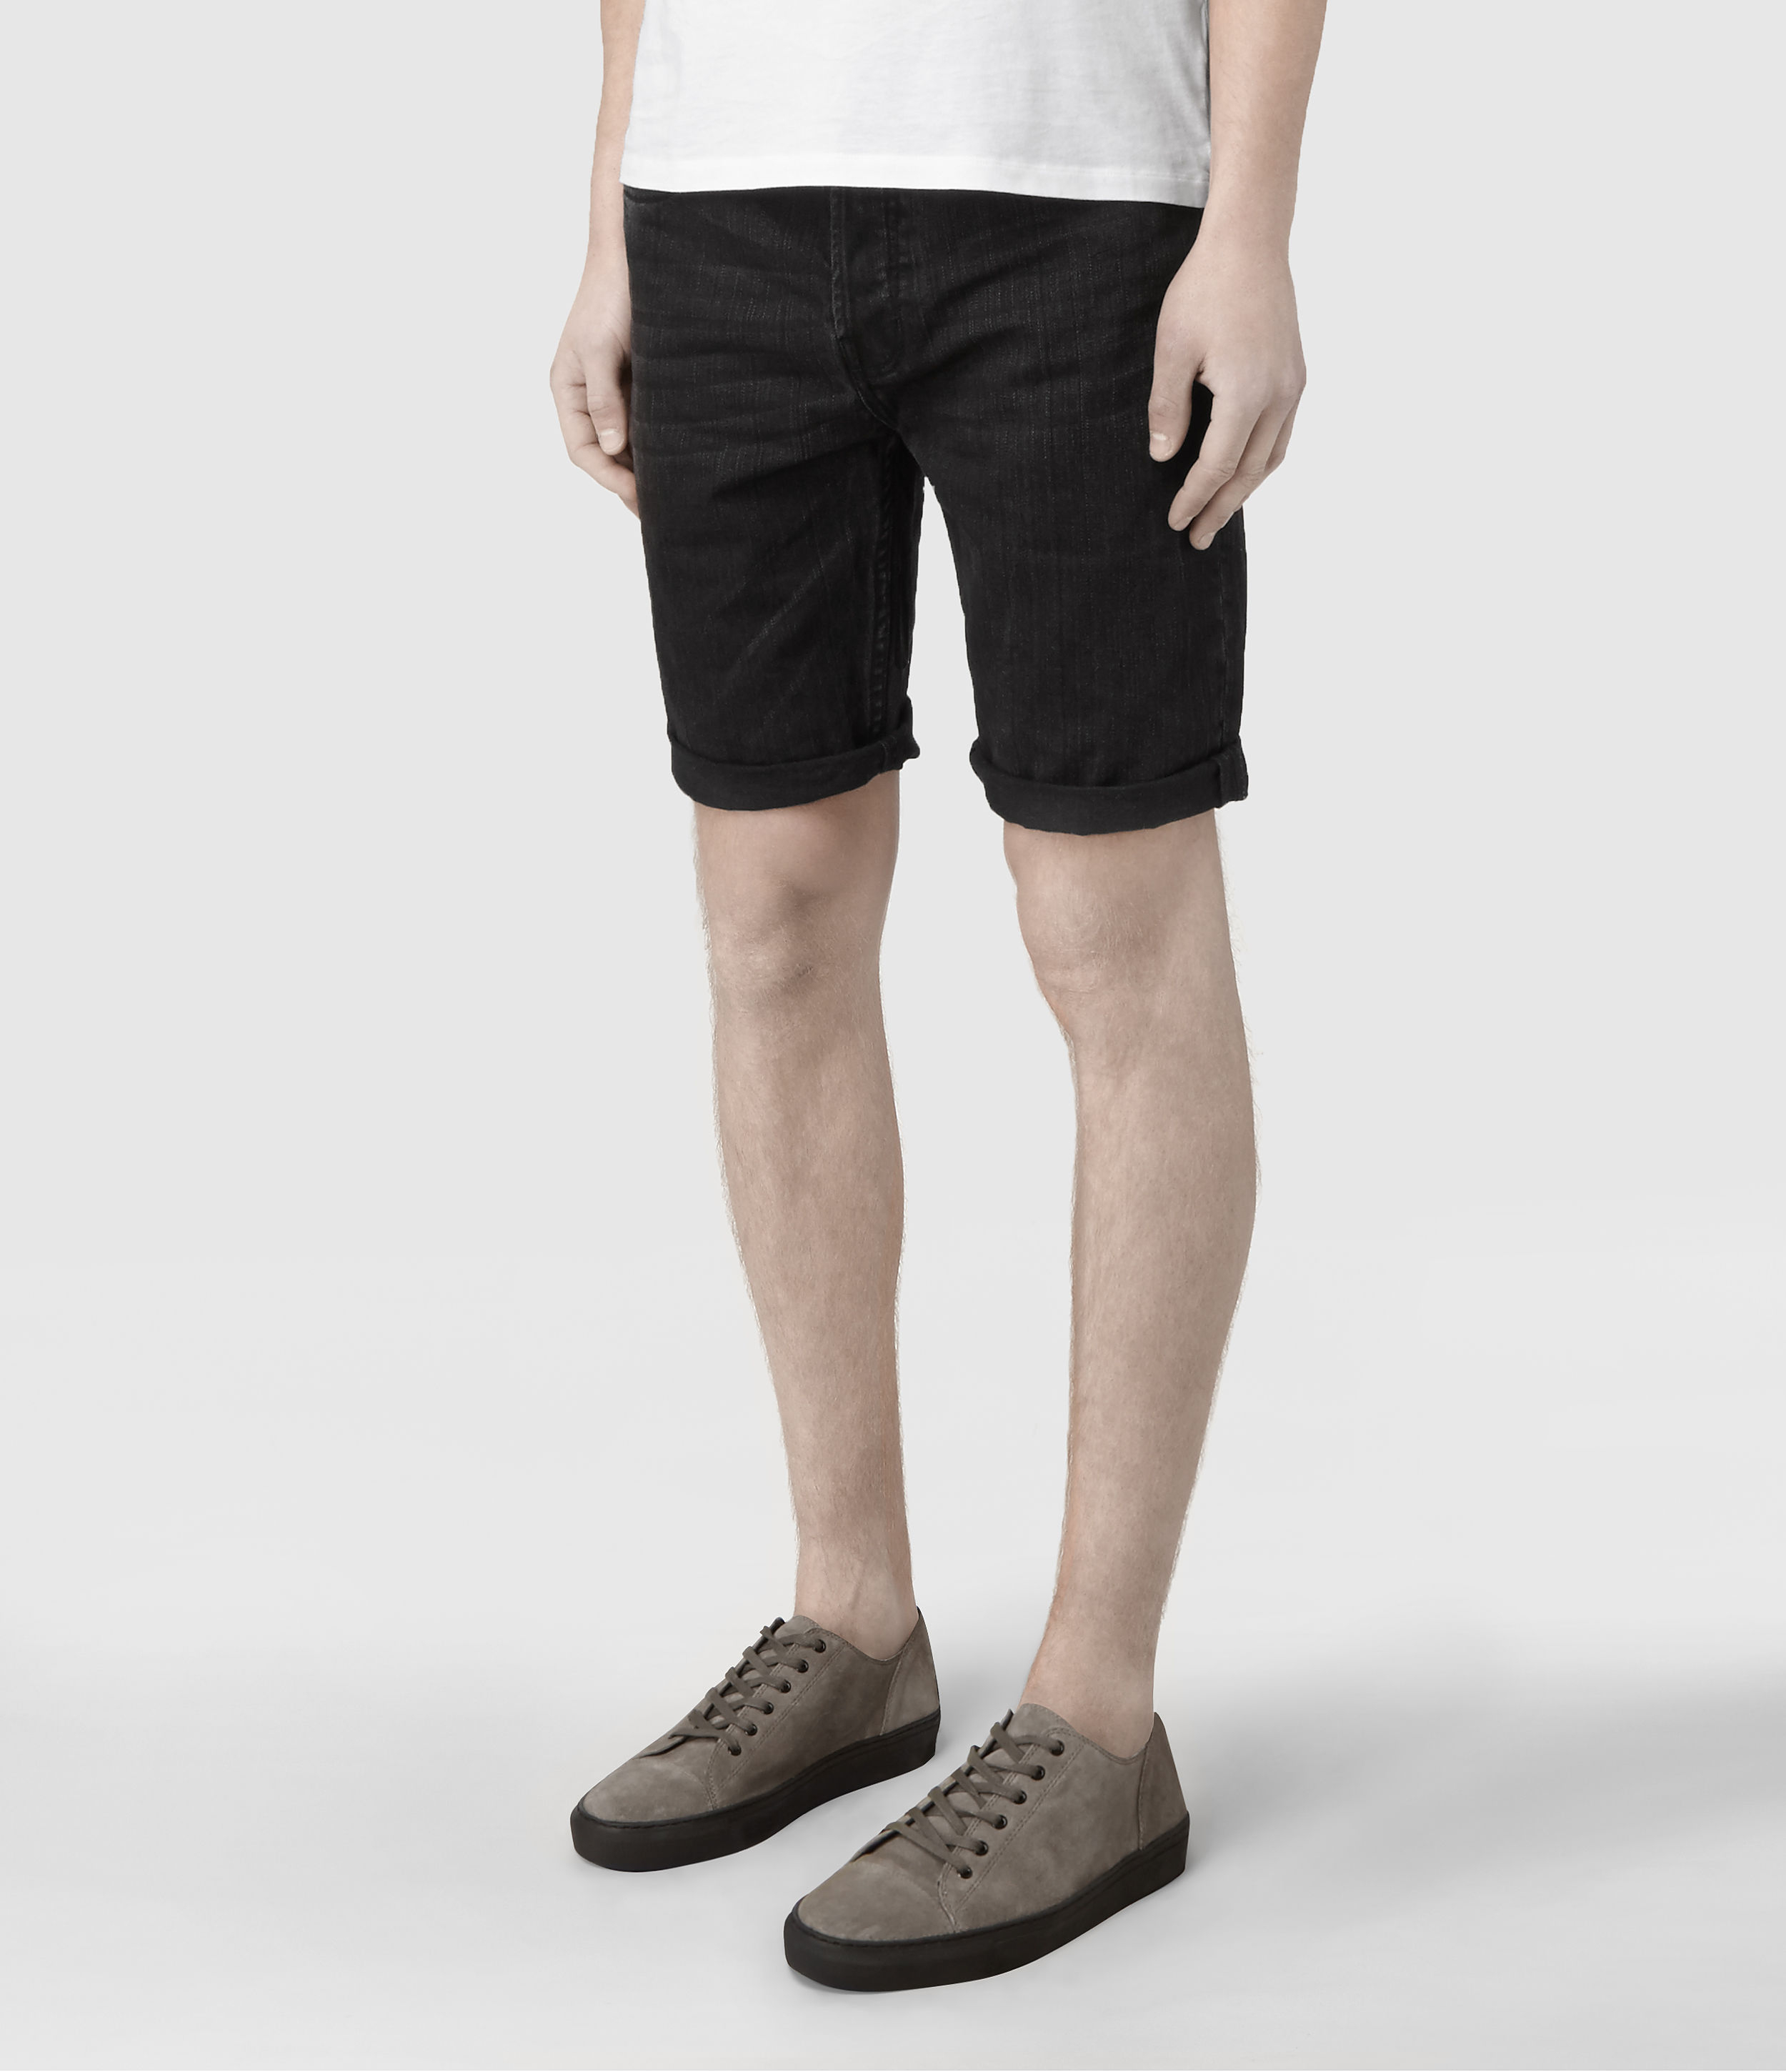 Black jeans shorts mens – Your new jeans photo blog